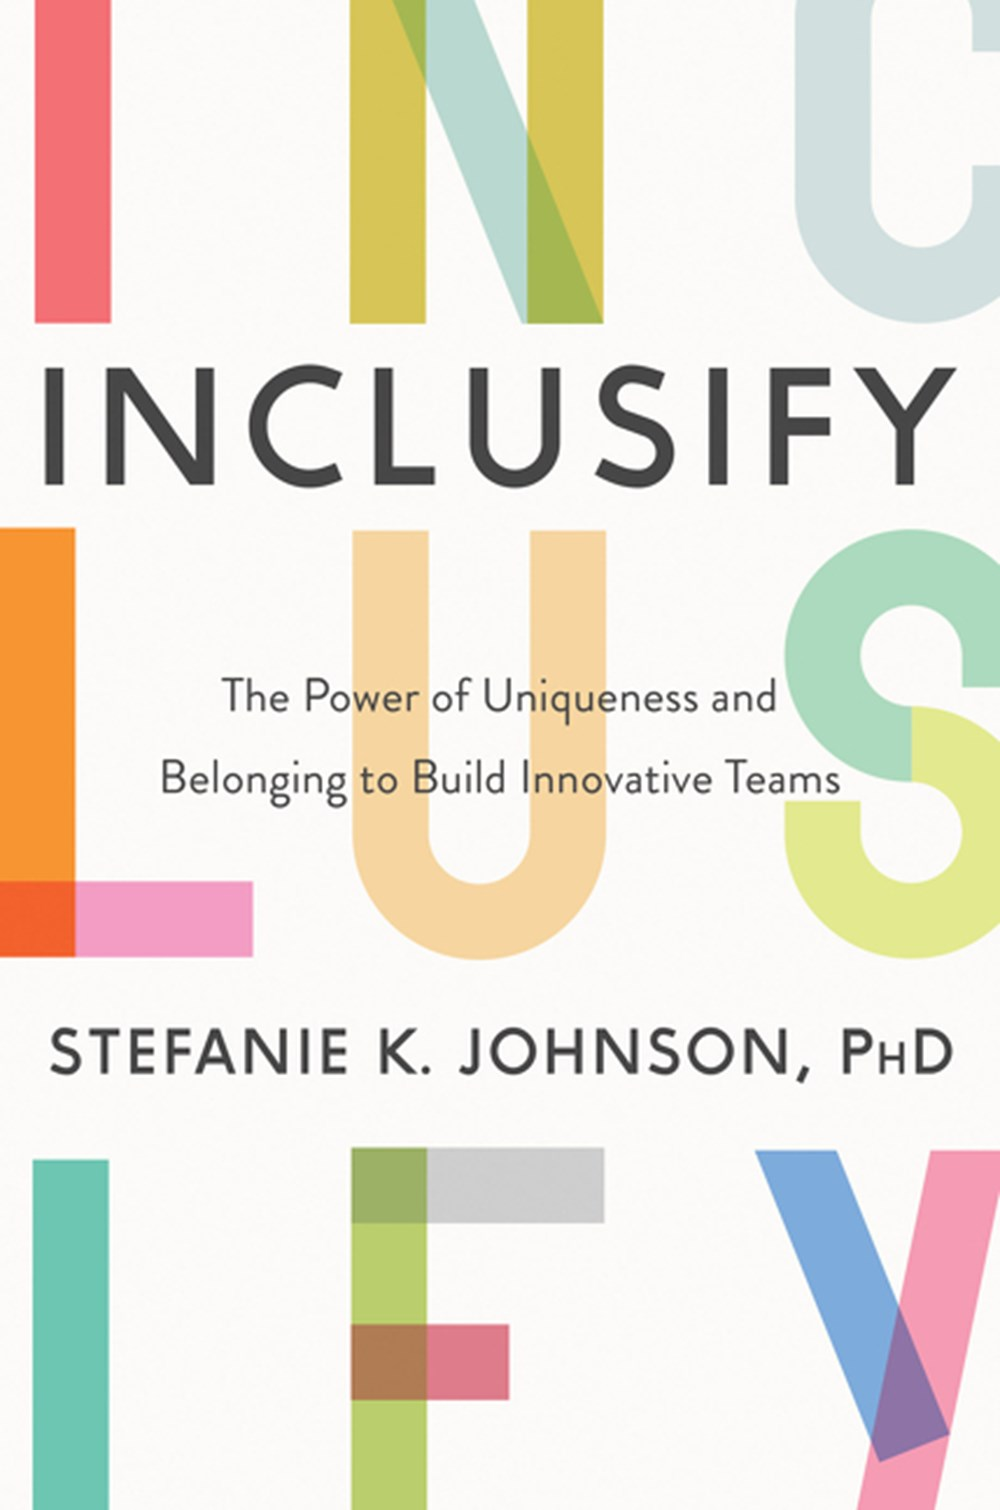 Inclusify The Power of Uniqueness and Belonging to Build Innovative Teams